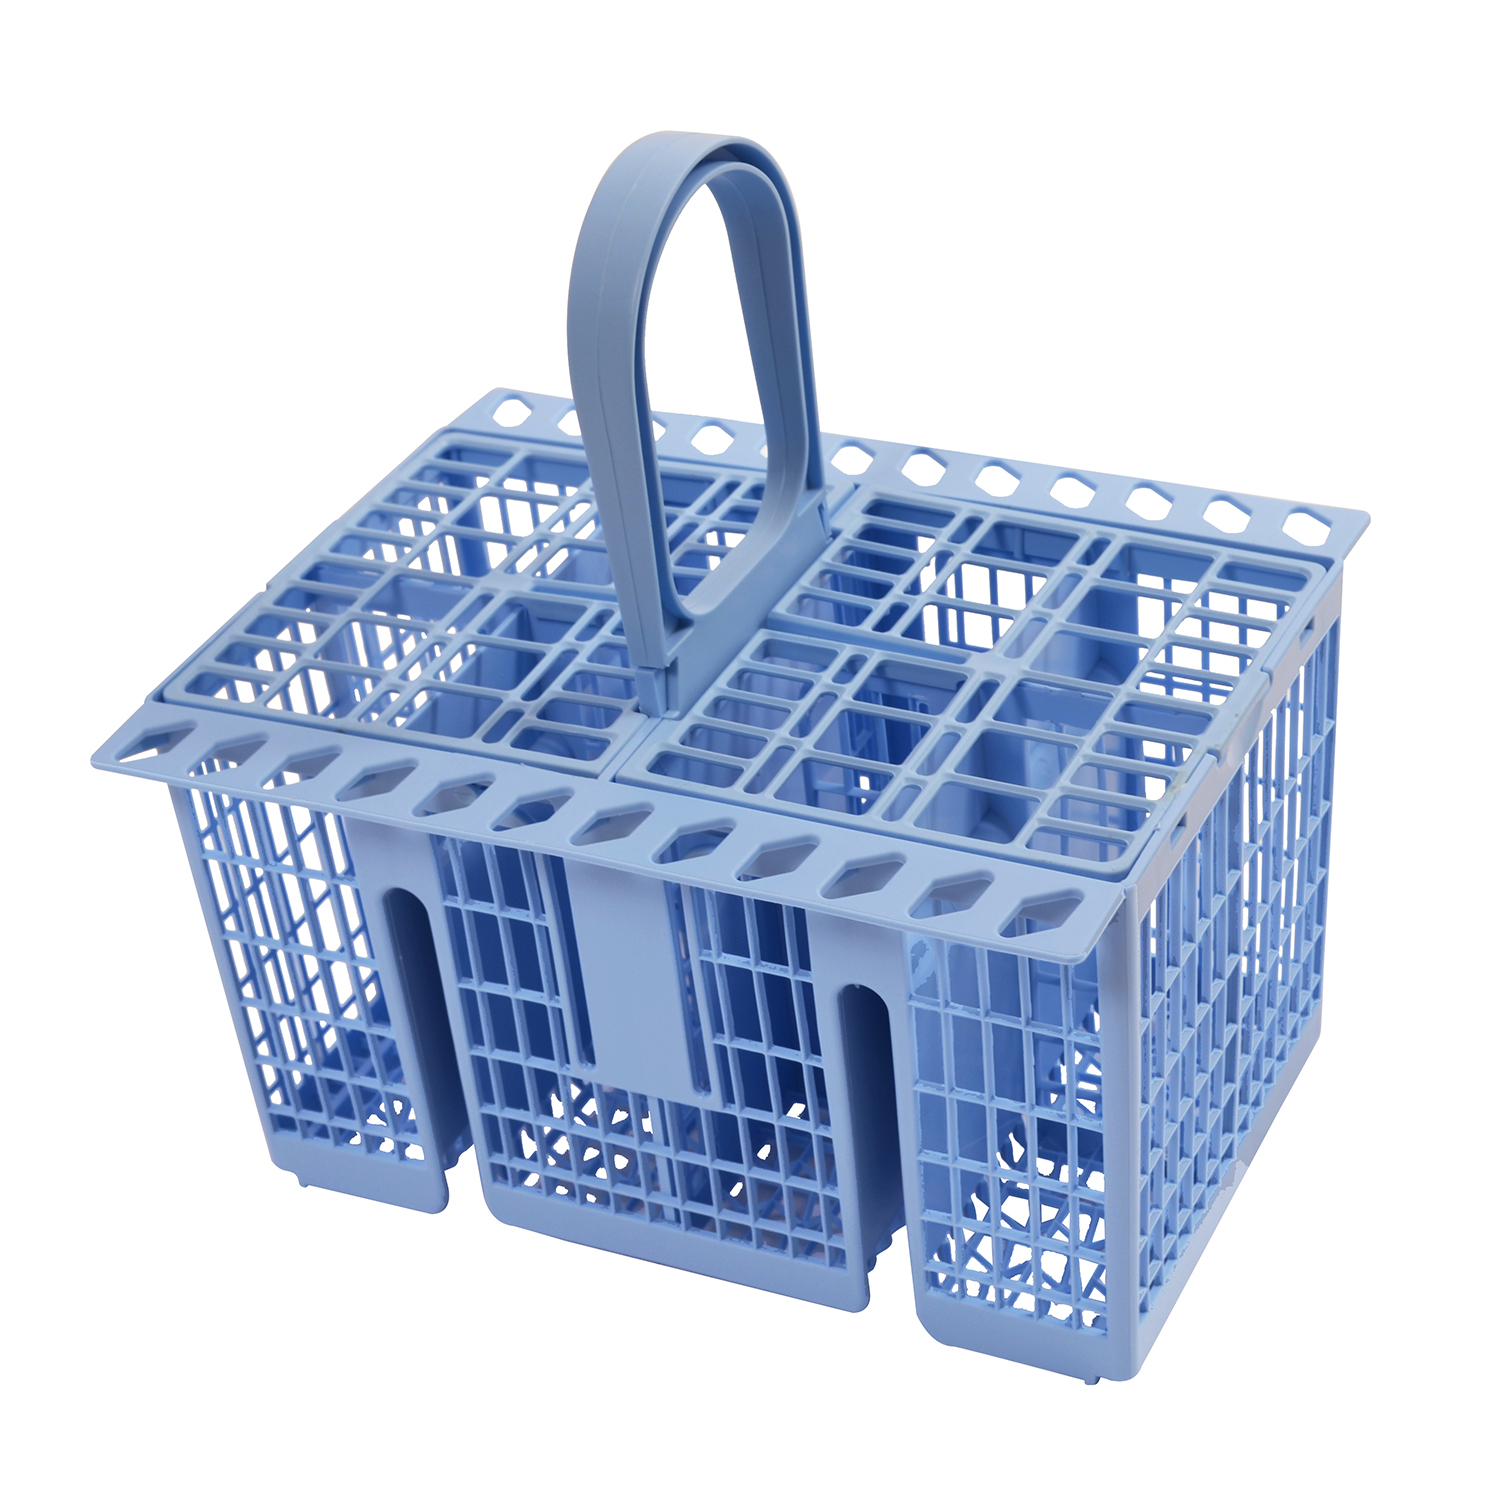 Description of CUTLERY BASKET LIGHT BLUE